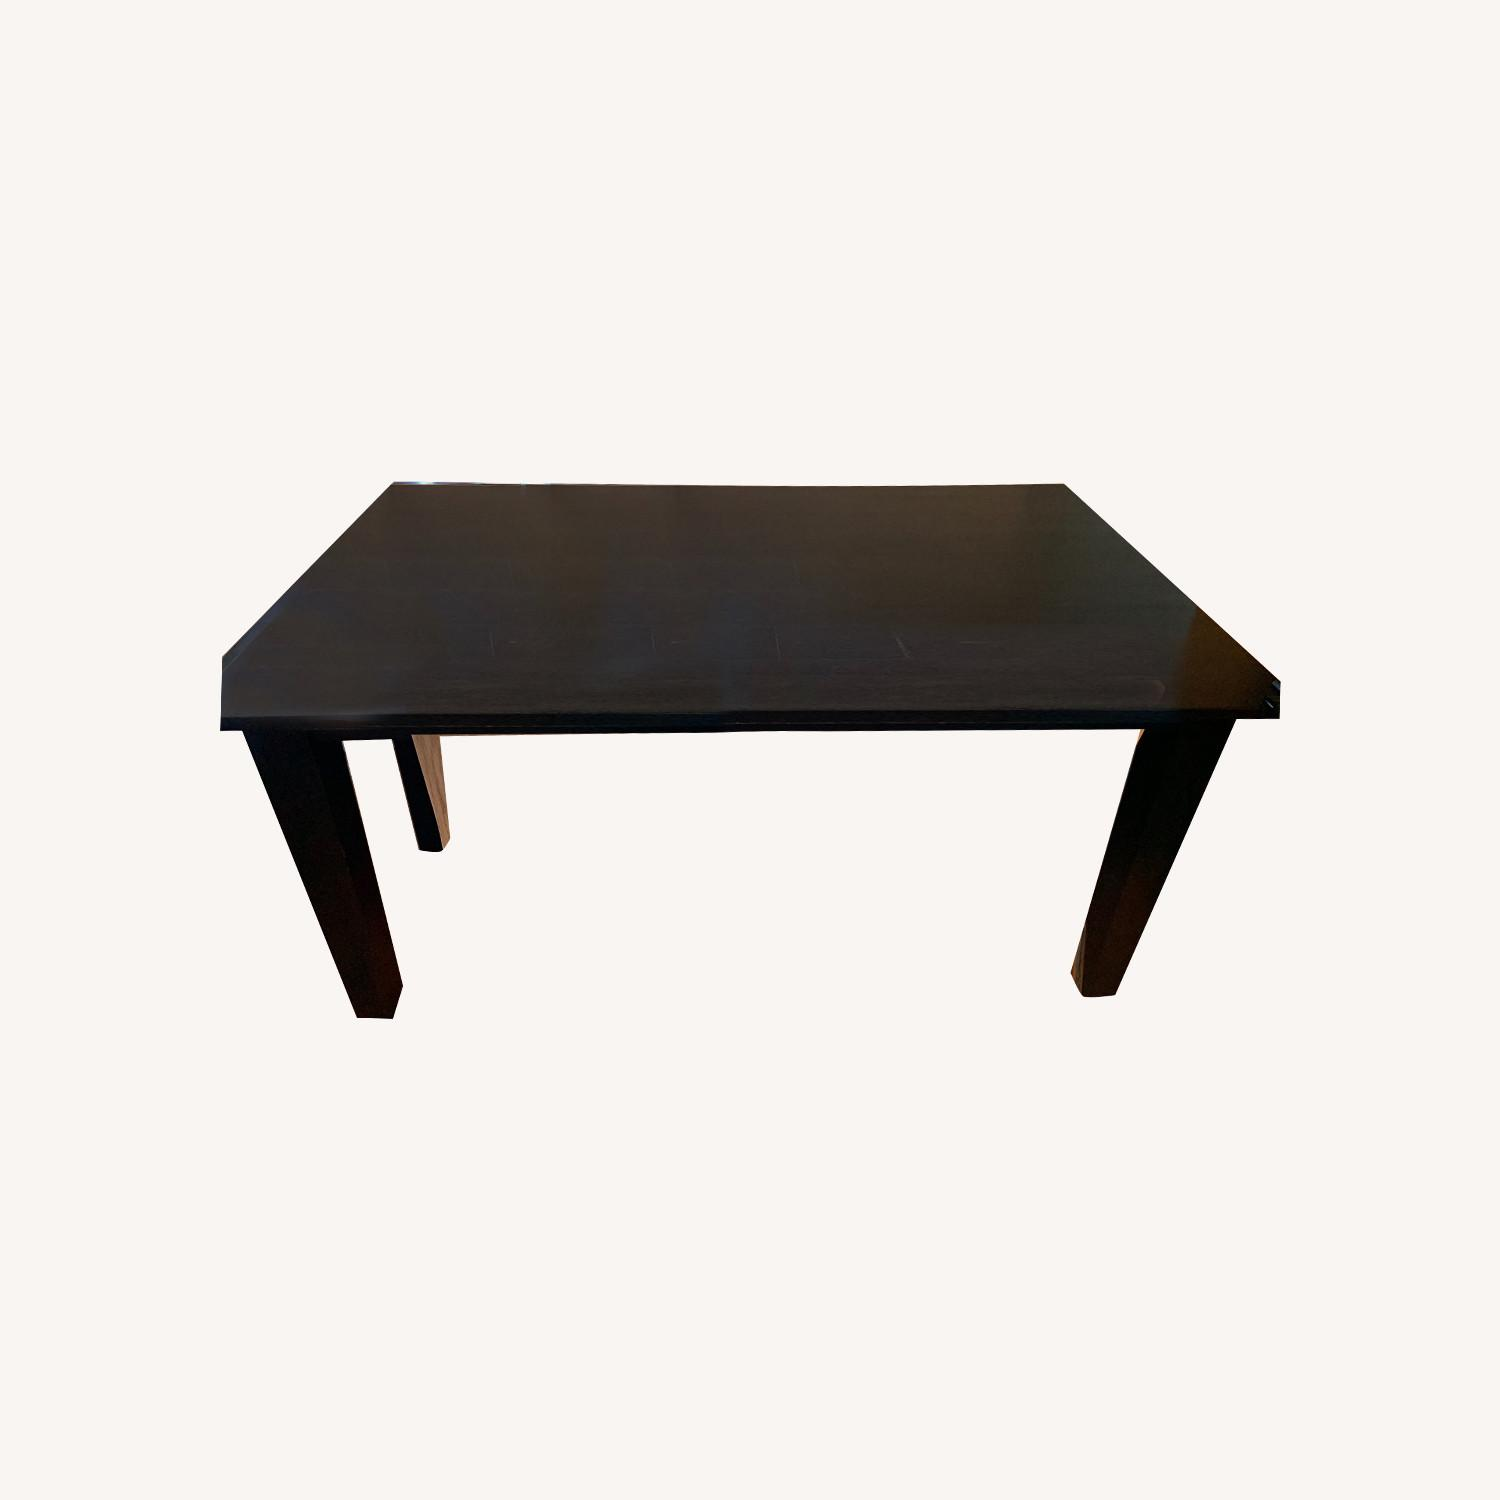 Crate & Barrel Basque Dining Table - image-4